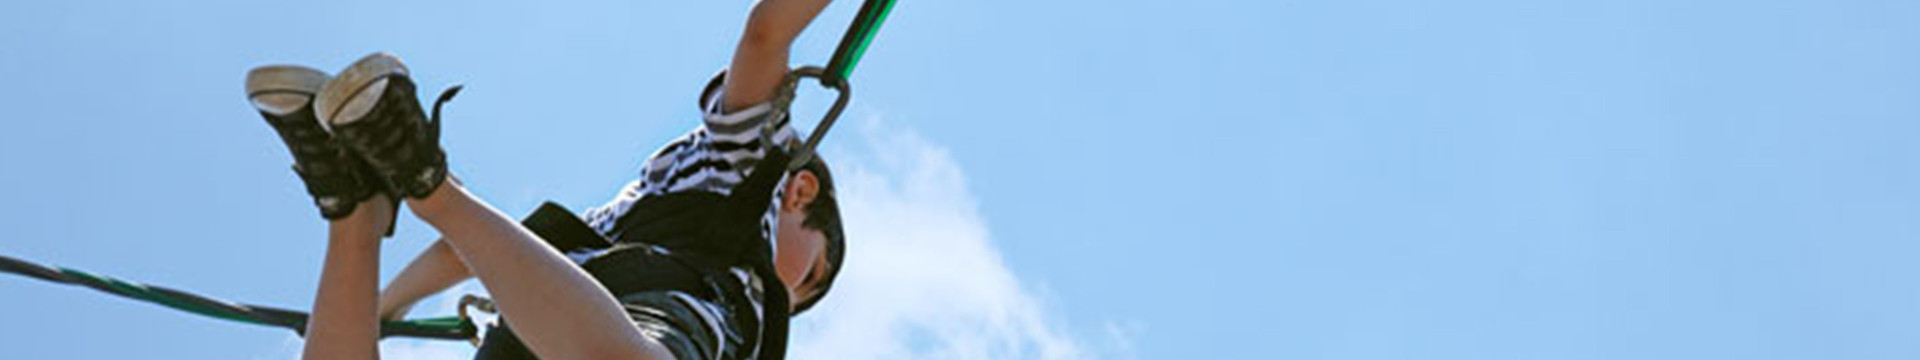 Bungee Jumping - Westgate River Ranch